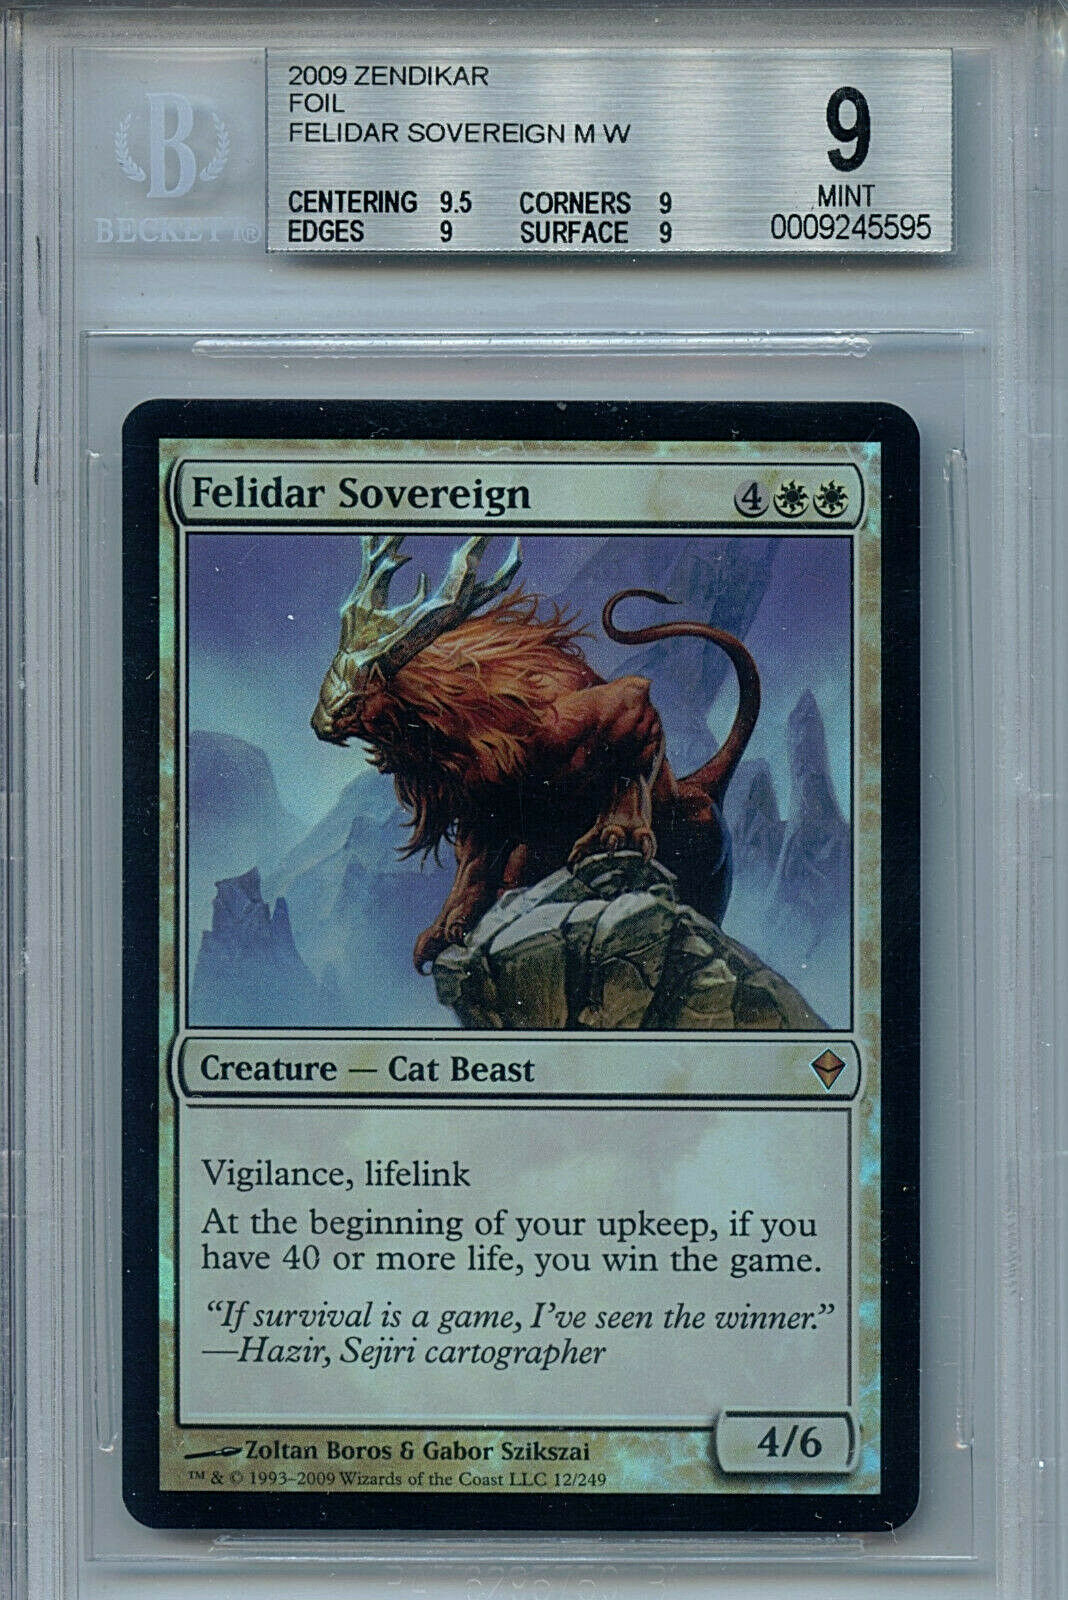 Mtg felidar Sovereign BGS 9.0 (9) menta zendikar Magic Coched amricons 5595